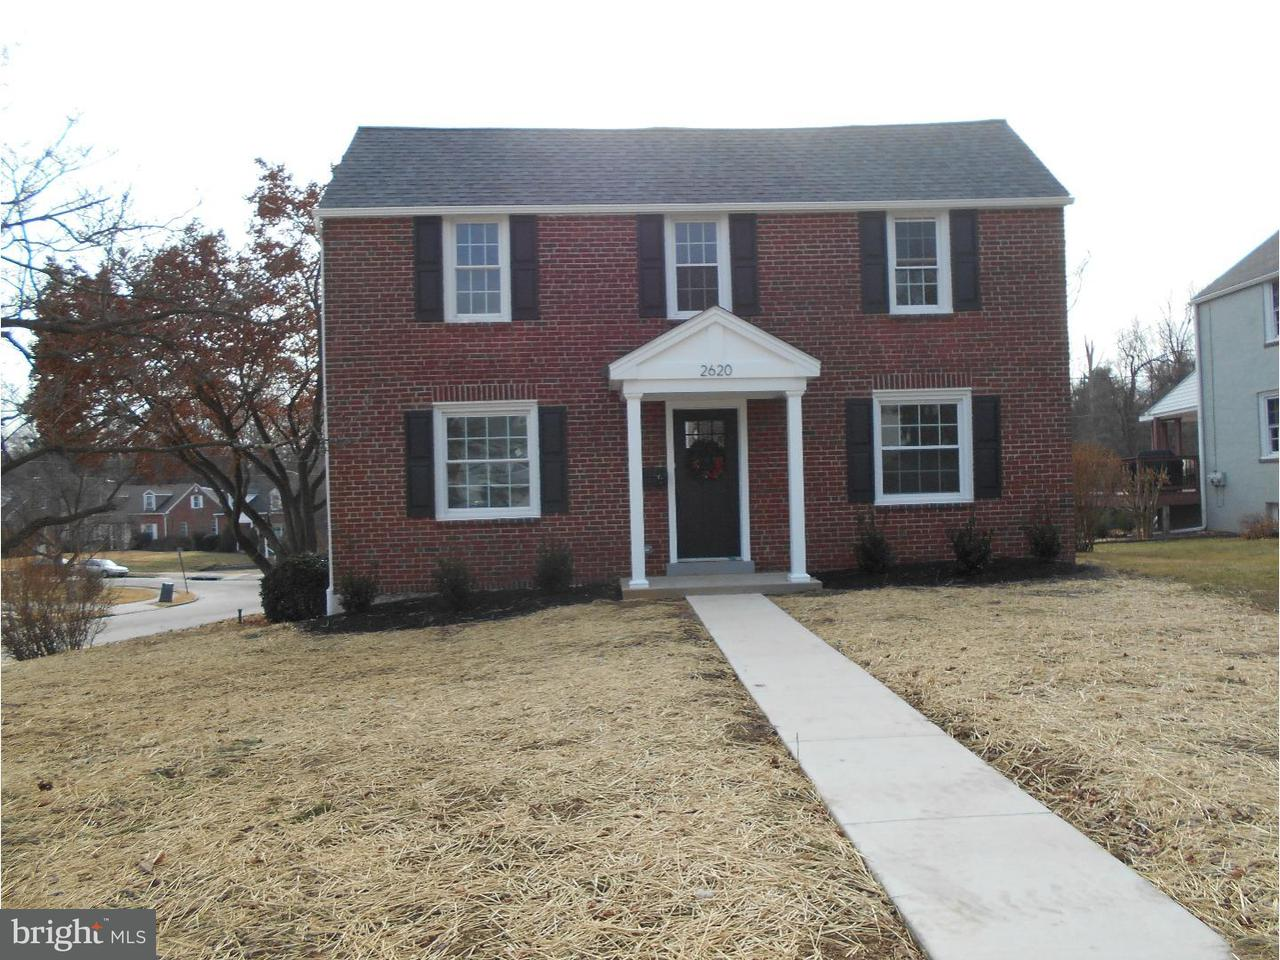 Single Family Home for Rent at 2620 FRANKLIN Avenue Broomall, Pennsylvania 19008 United States